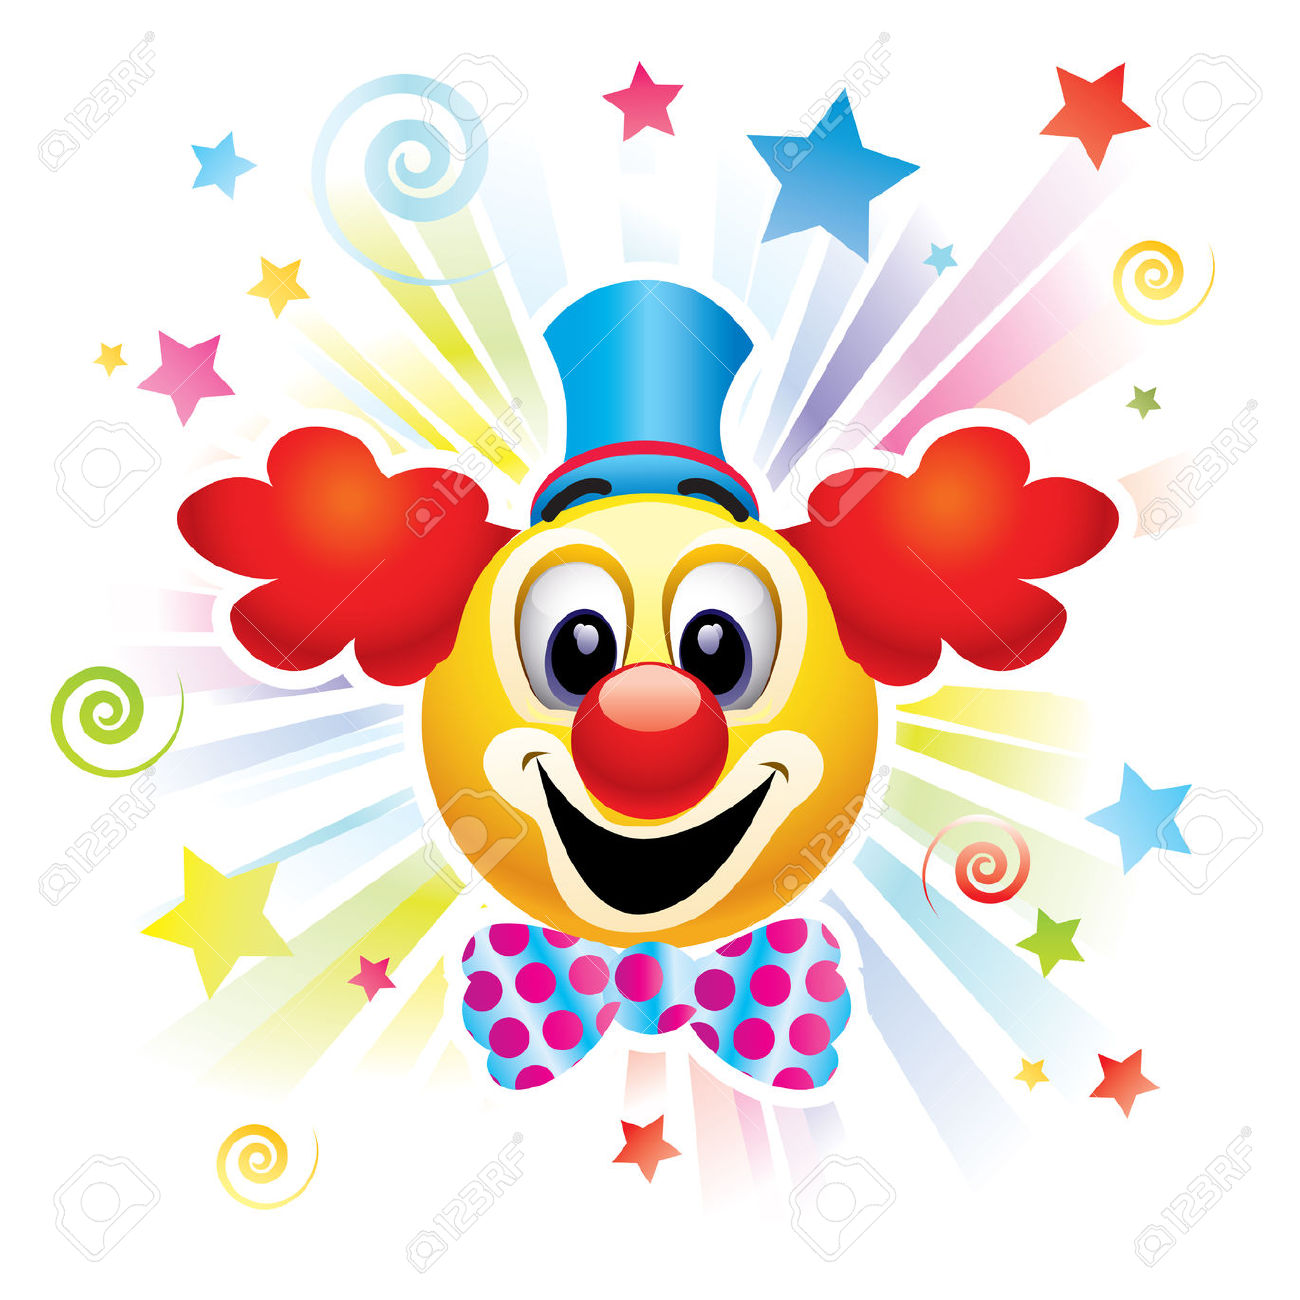 Circus joker face clipart graphic black and white download Cute clown face clipart - ClipartFest graphic black and white download